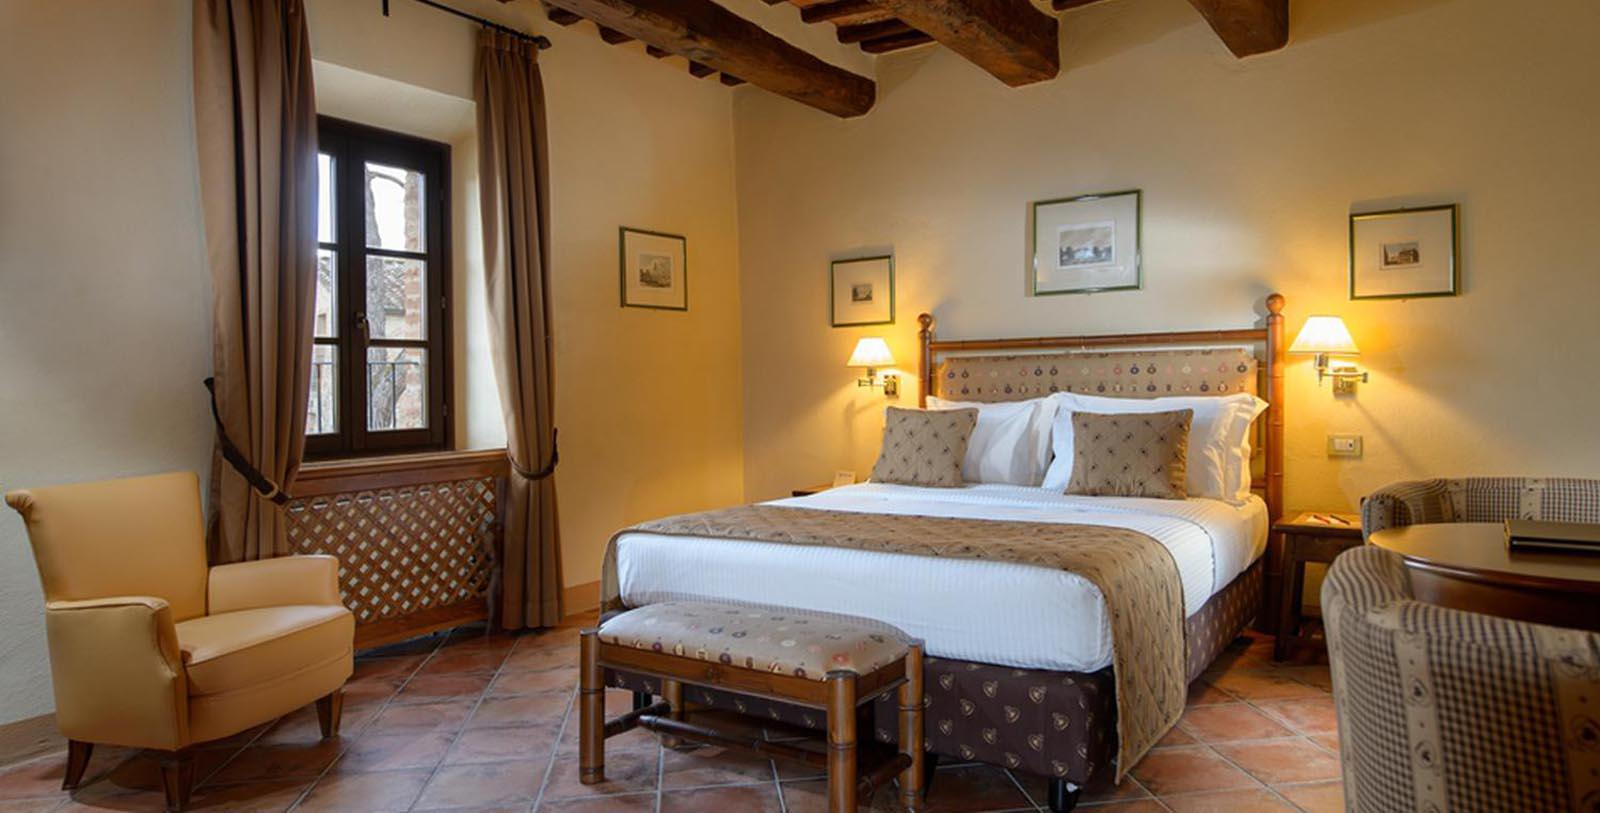 Image of Guestroom Interior La Bagnaia Golf & Spa Resort Siena, Curio Collection by Hilton, 11th Century, Member of Historic Hotels Worldwide, in Siena, Italy, Accommodations